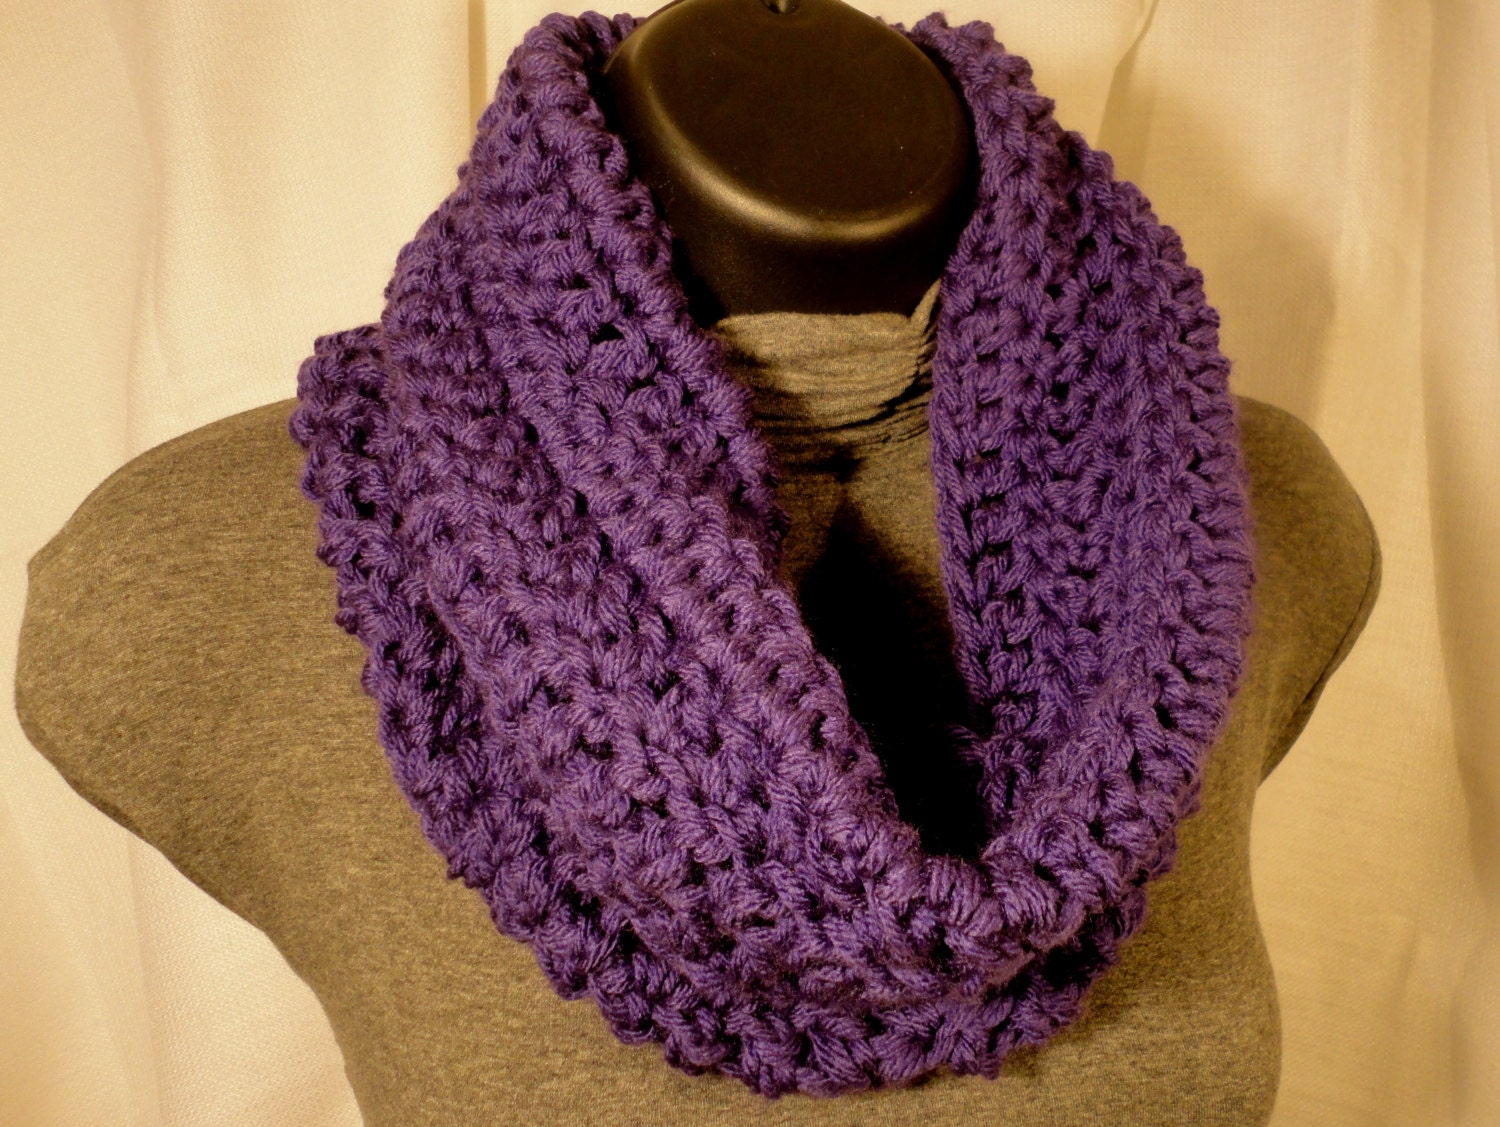 Crochet Patterns Neck Scarves : ... Neck Warmer Purple Grape by VillaYarnDesigns Cowl Neck Scarves Crochet